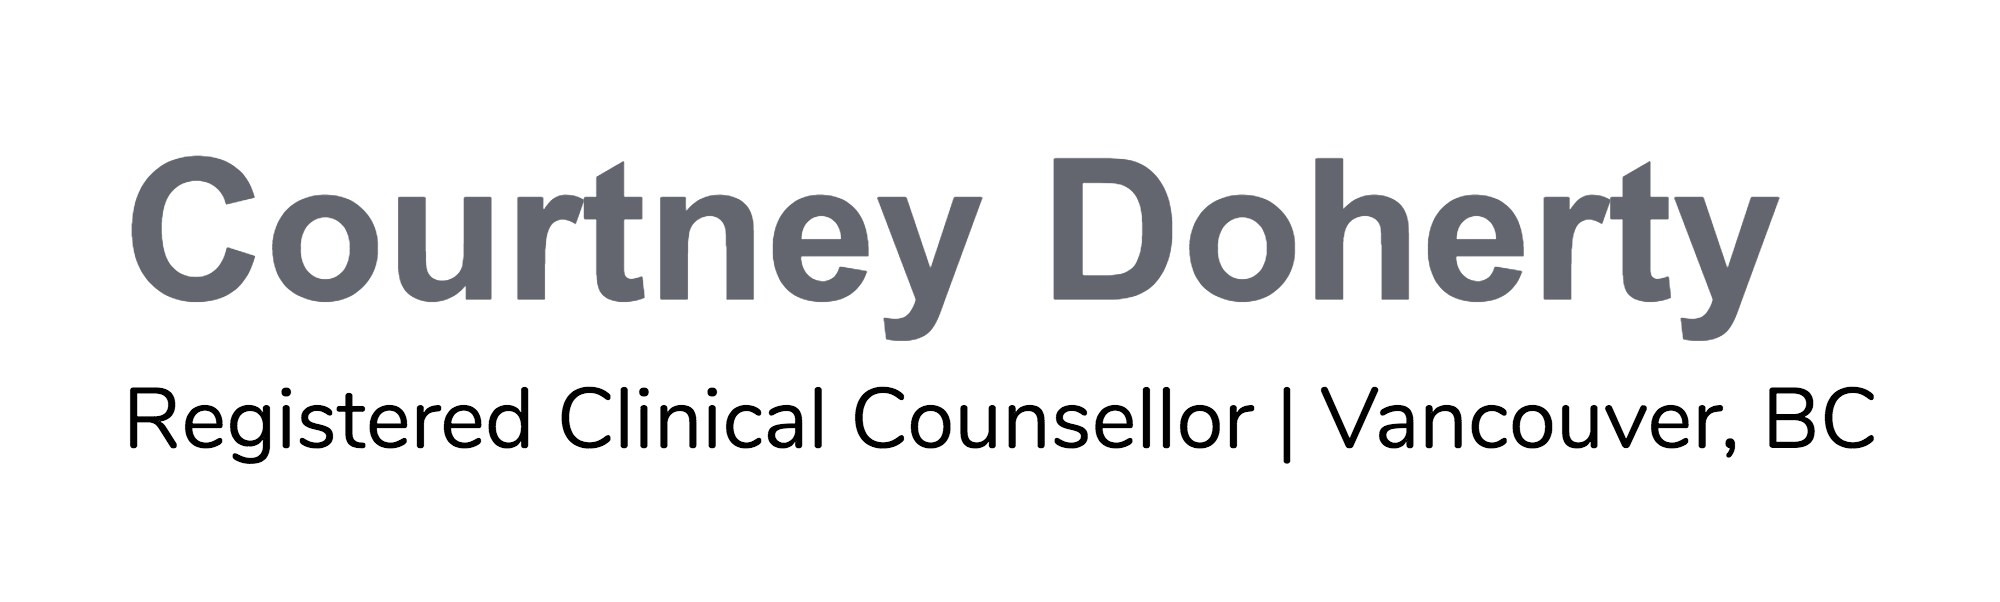 Courtney Doherty-logo (1).png